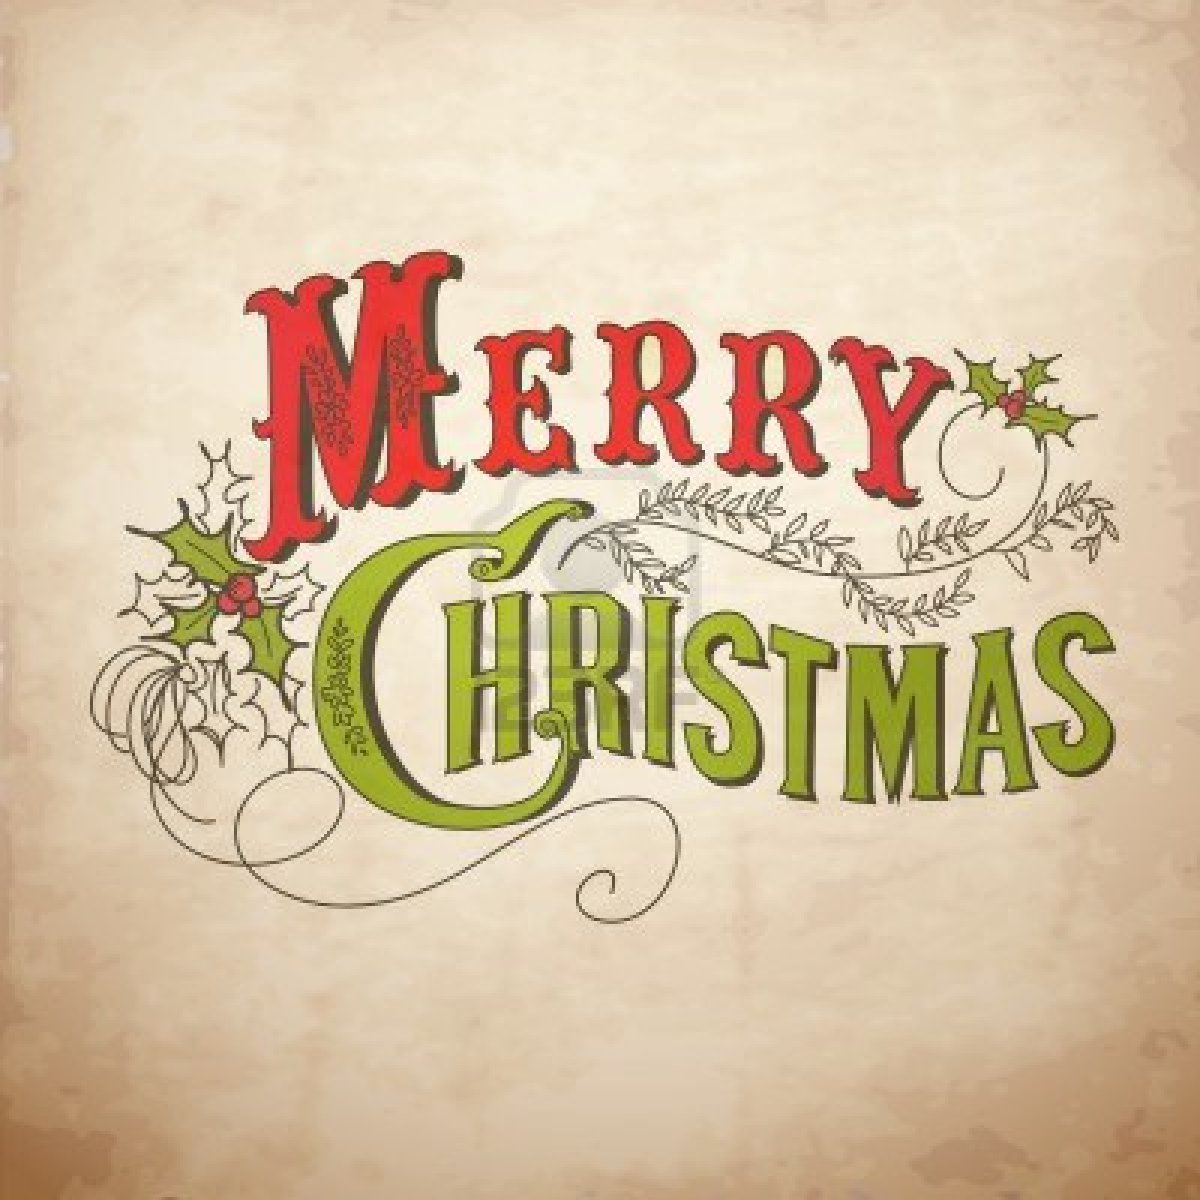 11158899-vintage-christmas-card-merry-christmas-lettering.jpg